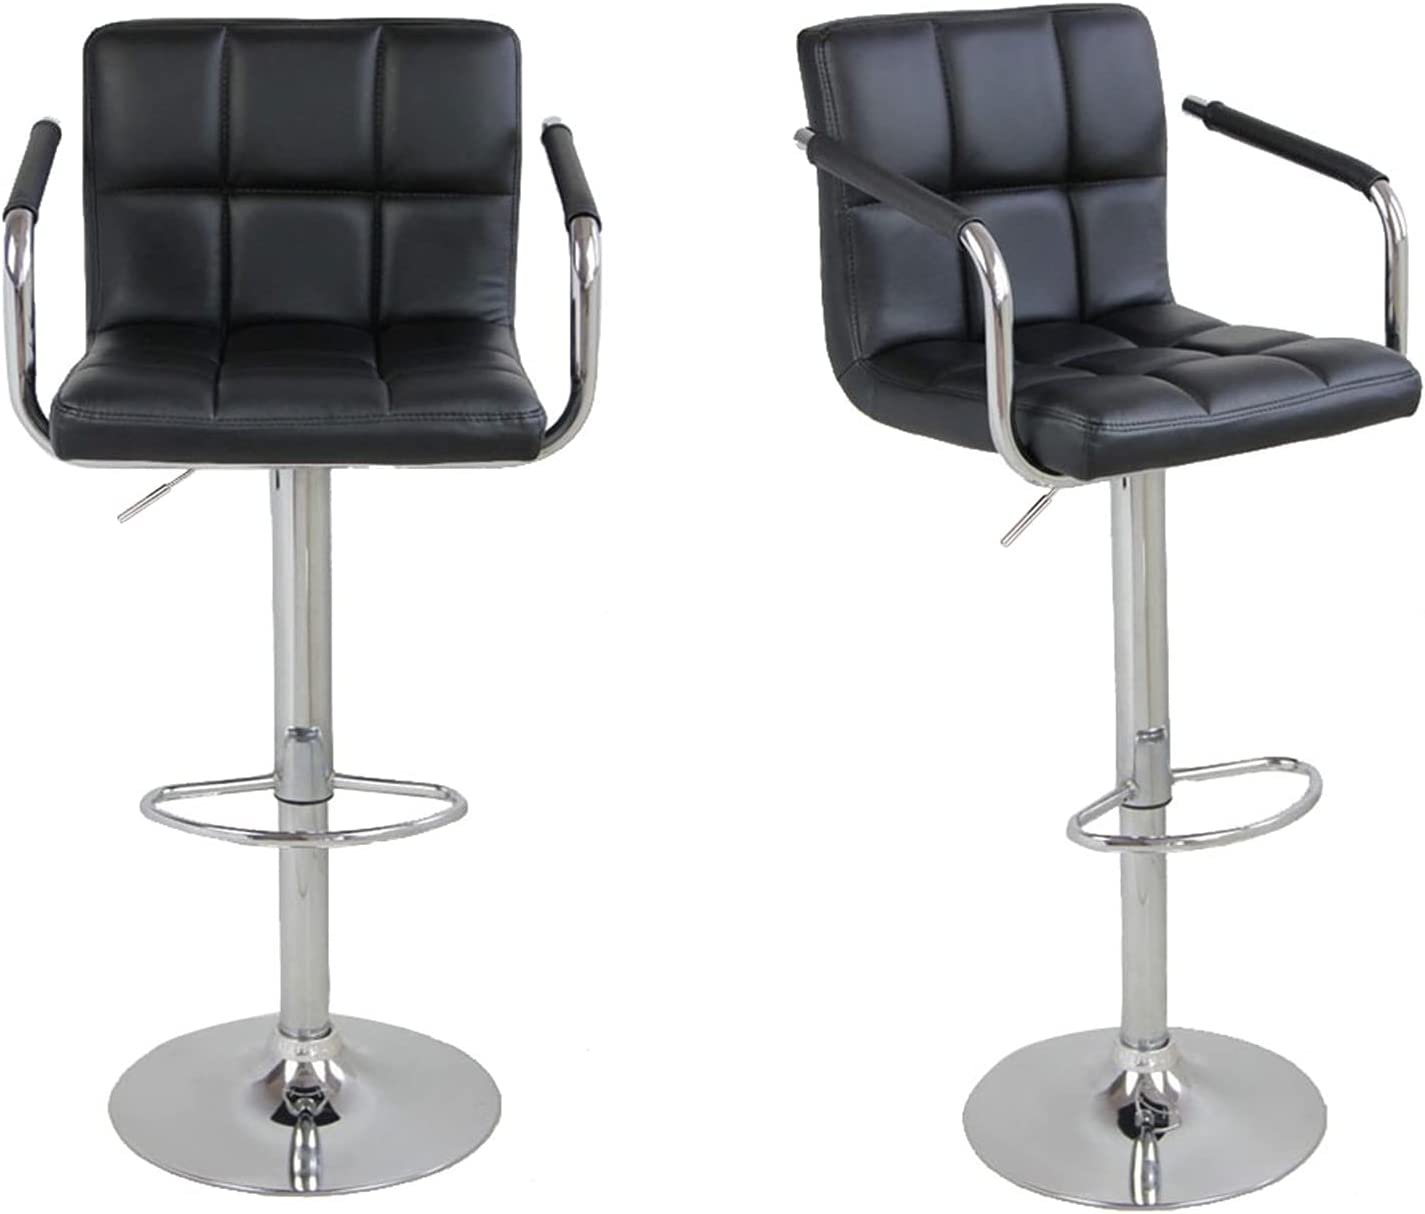 Trlec Luxury goods gt4-ly 2 pcs 60-80cm 6 Bar Round Stools Checks Cushion Be super welcome wit